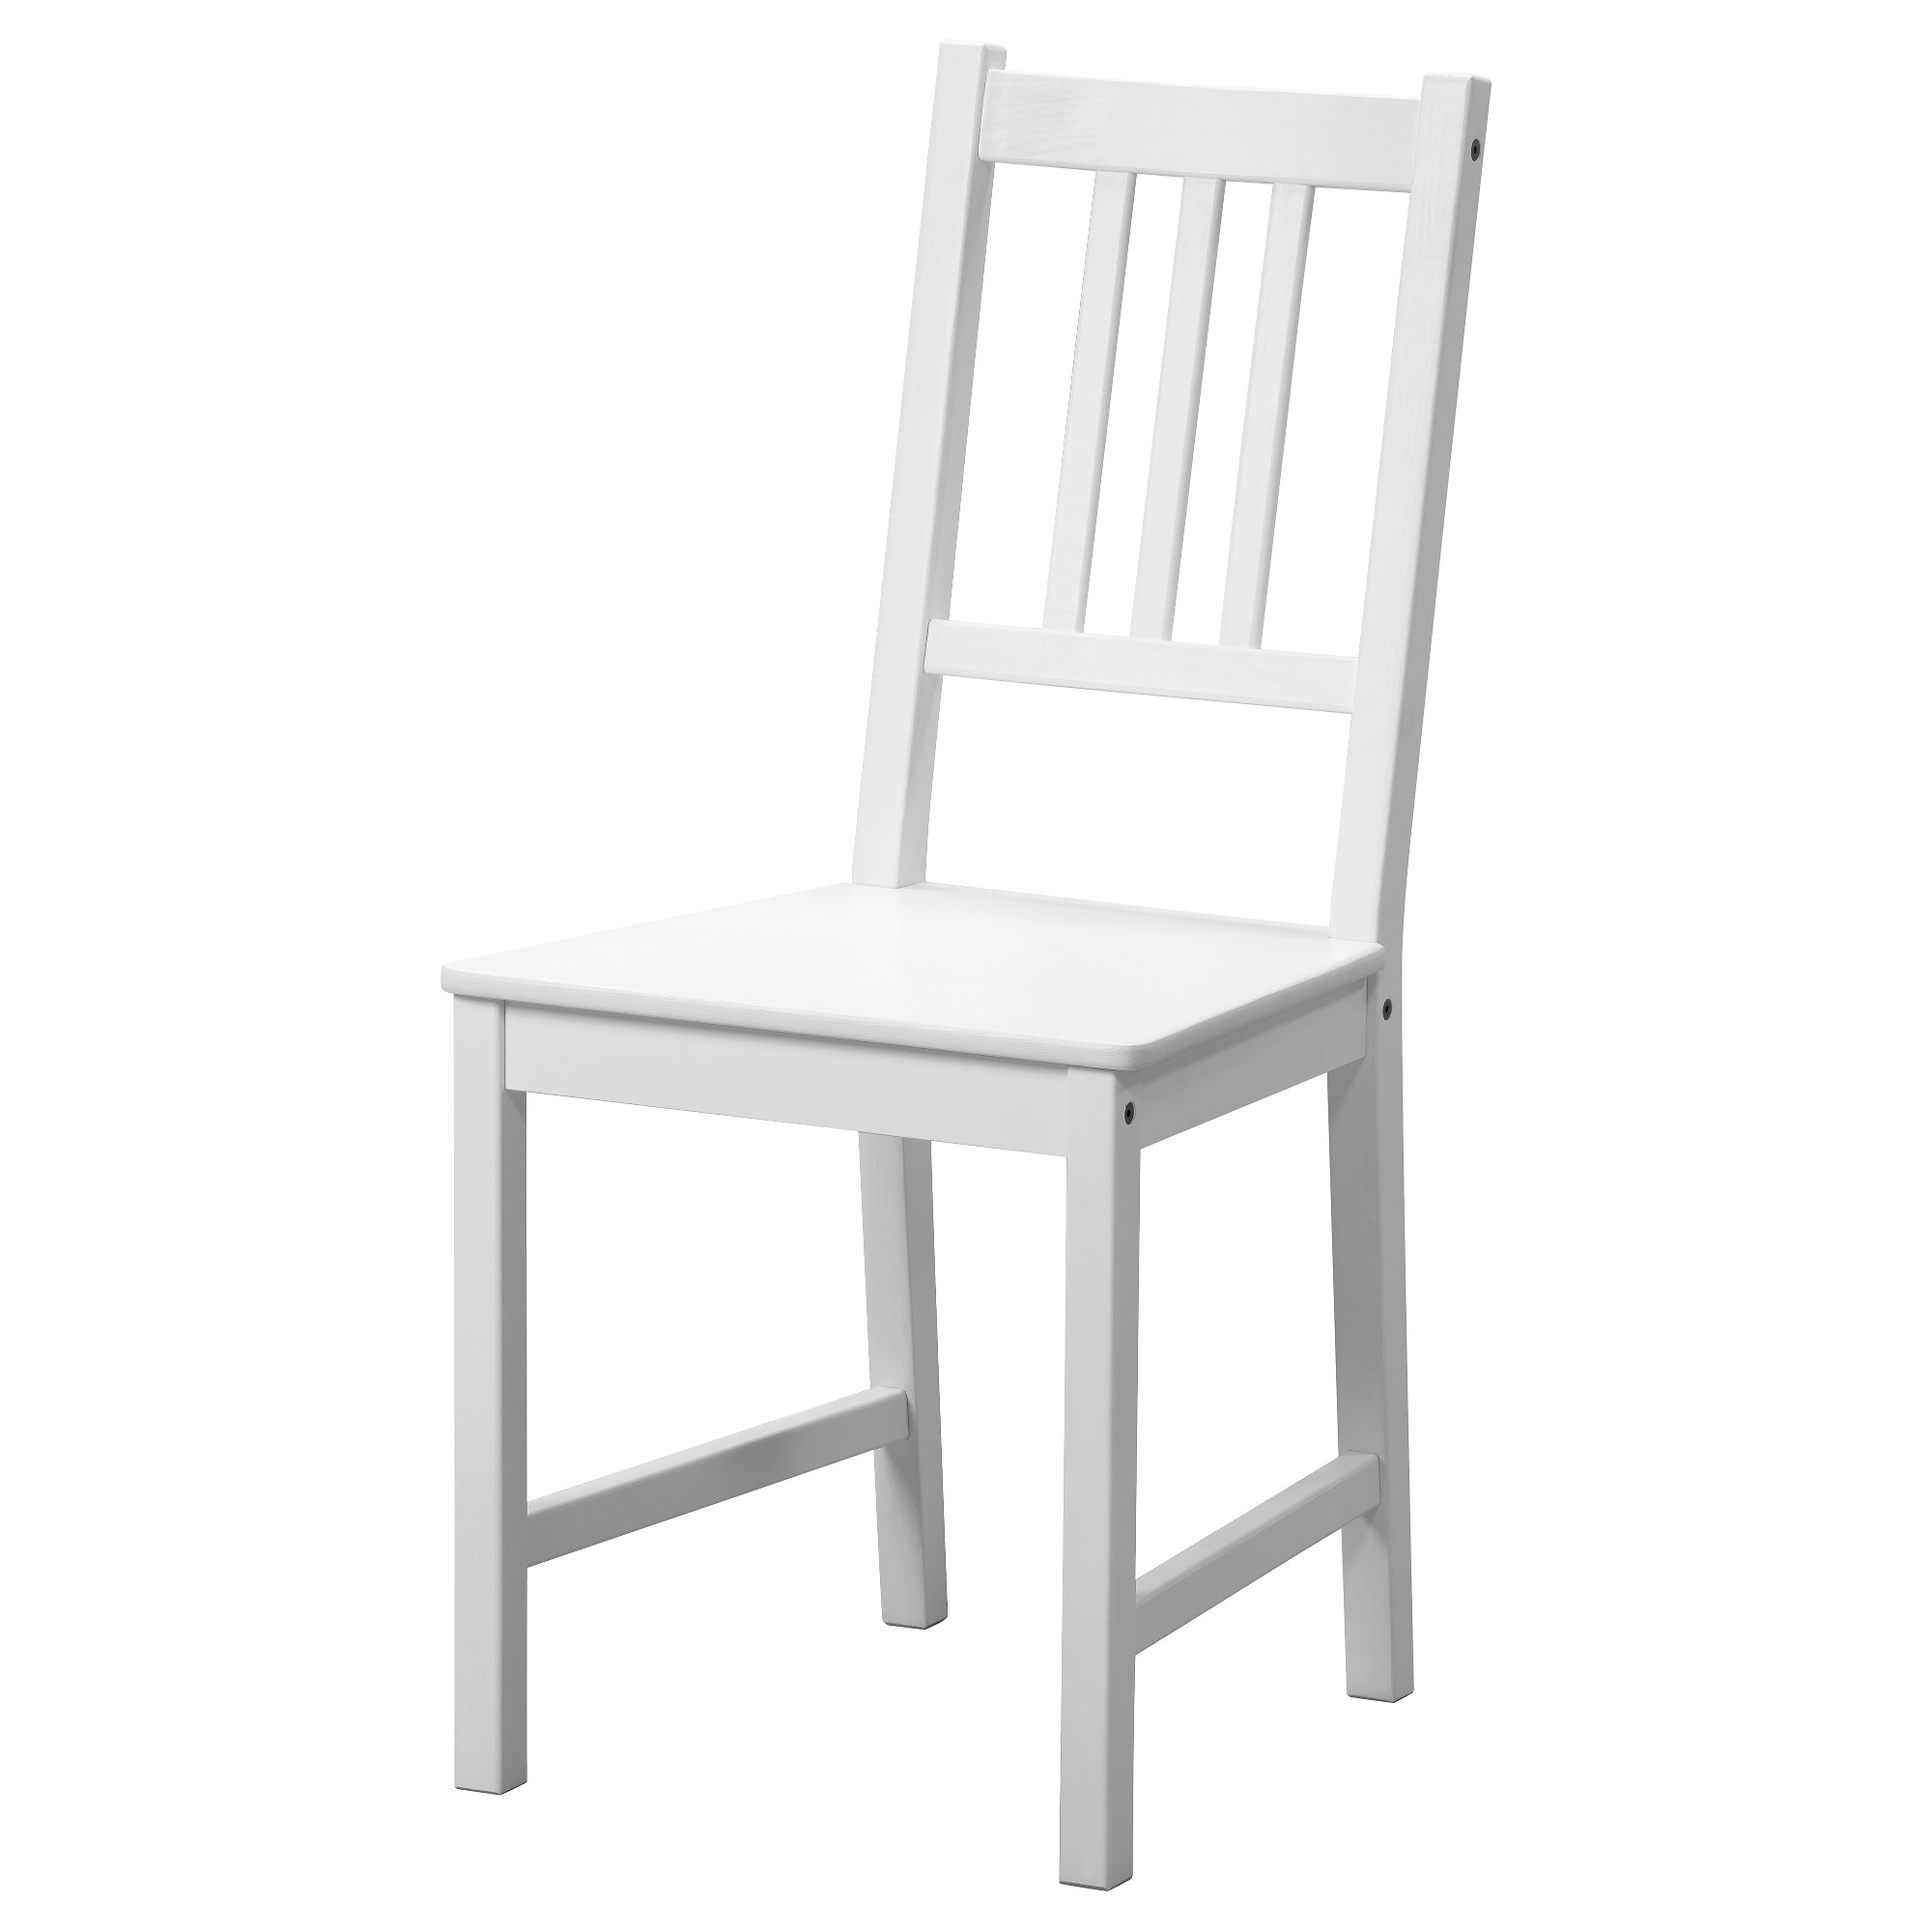 STEFAN, chair, white